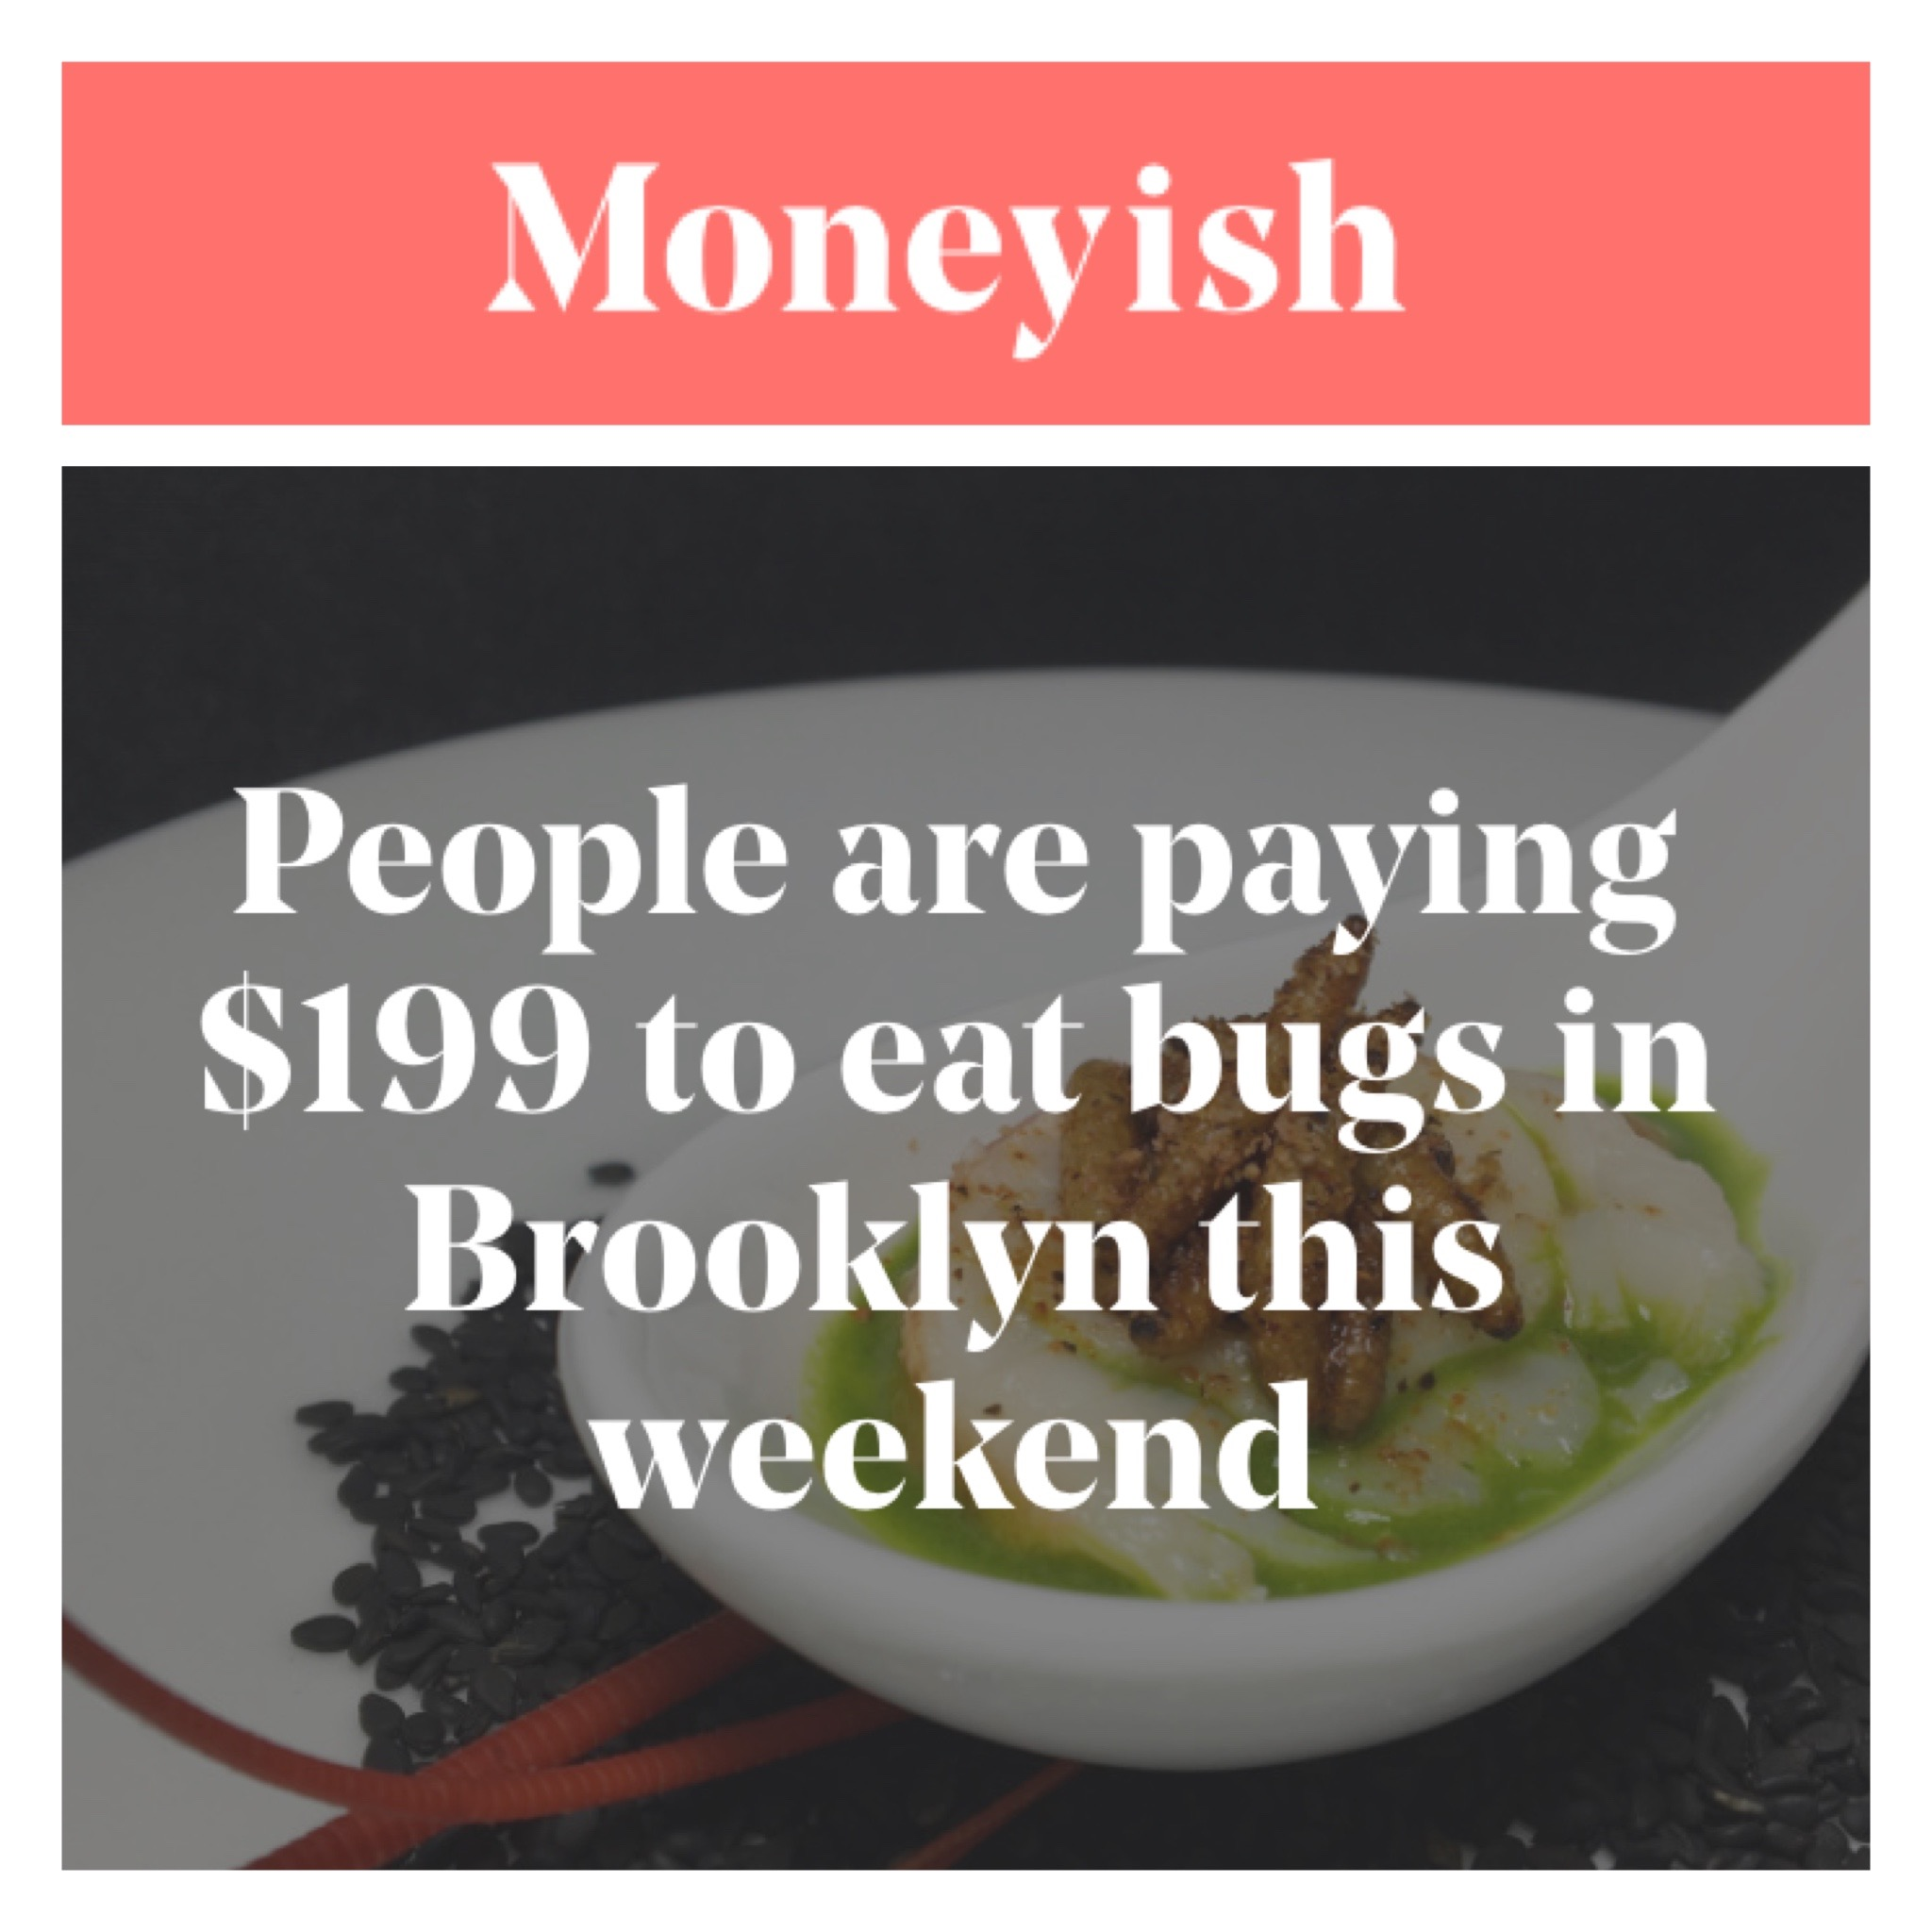 https://moneyish.com/ish/people-are-paying-199-to-eat-bugs-in-brooklyn-this-weekend/